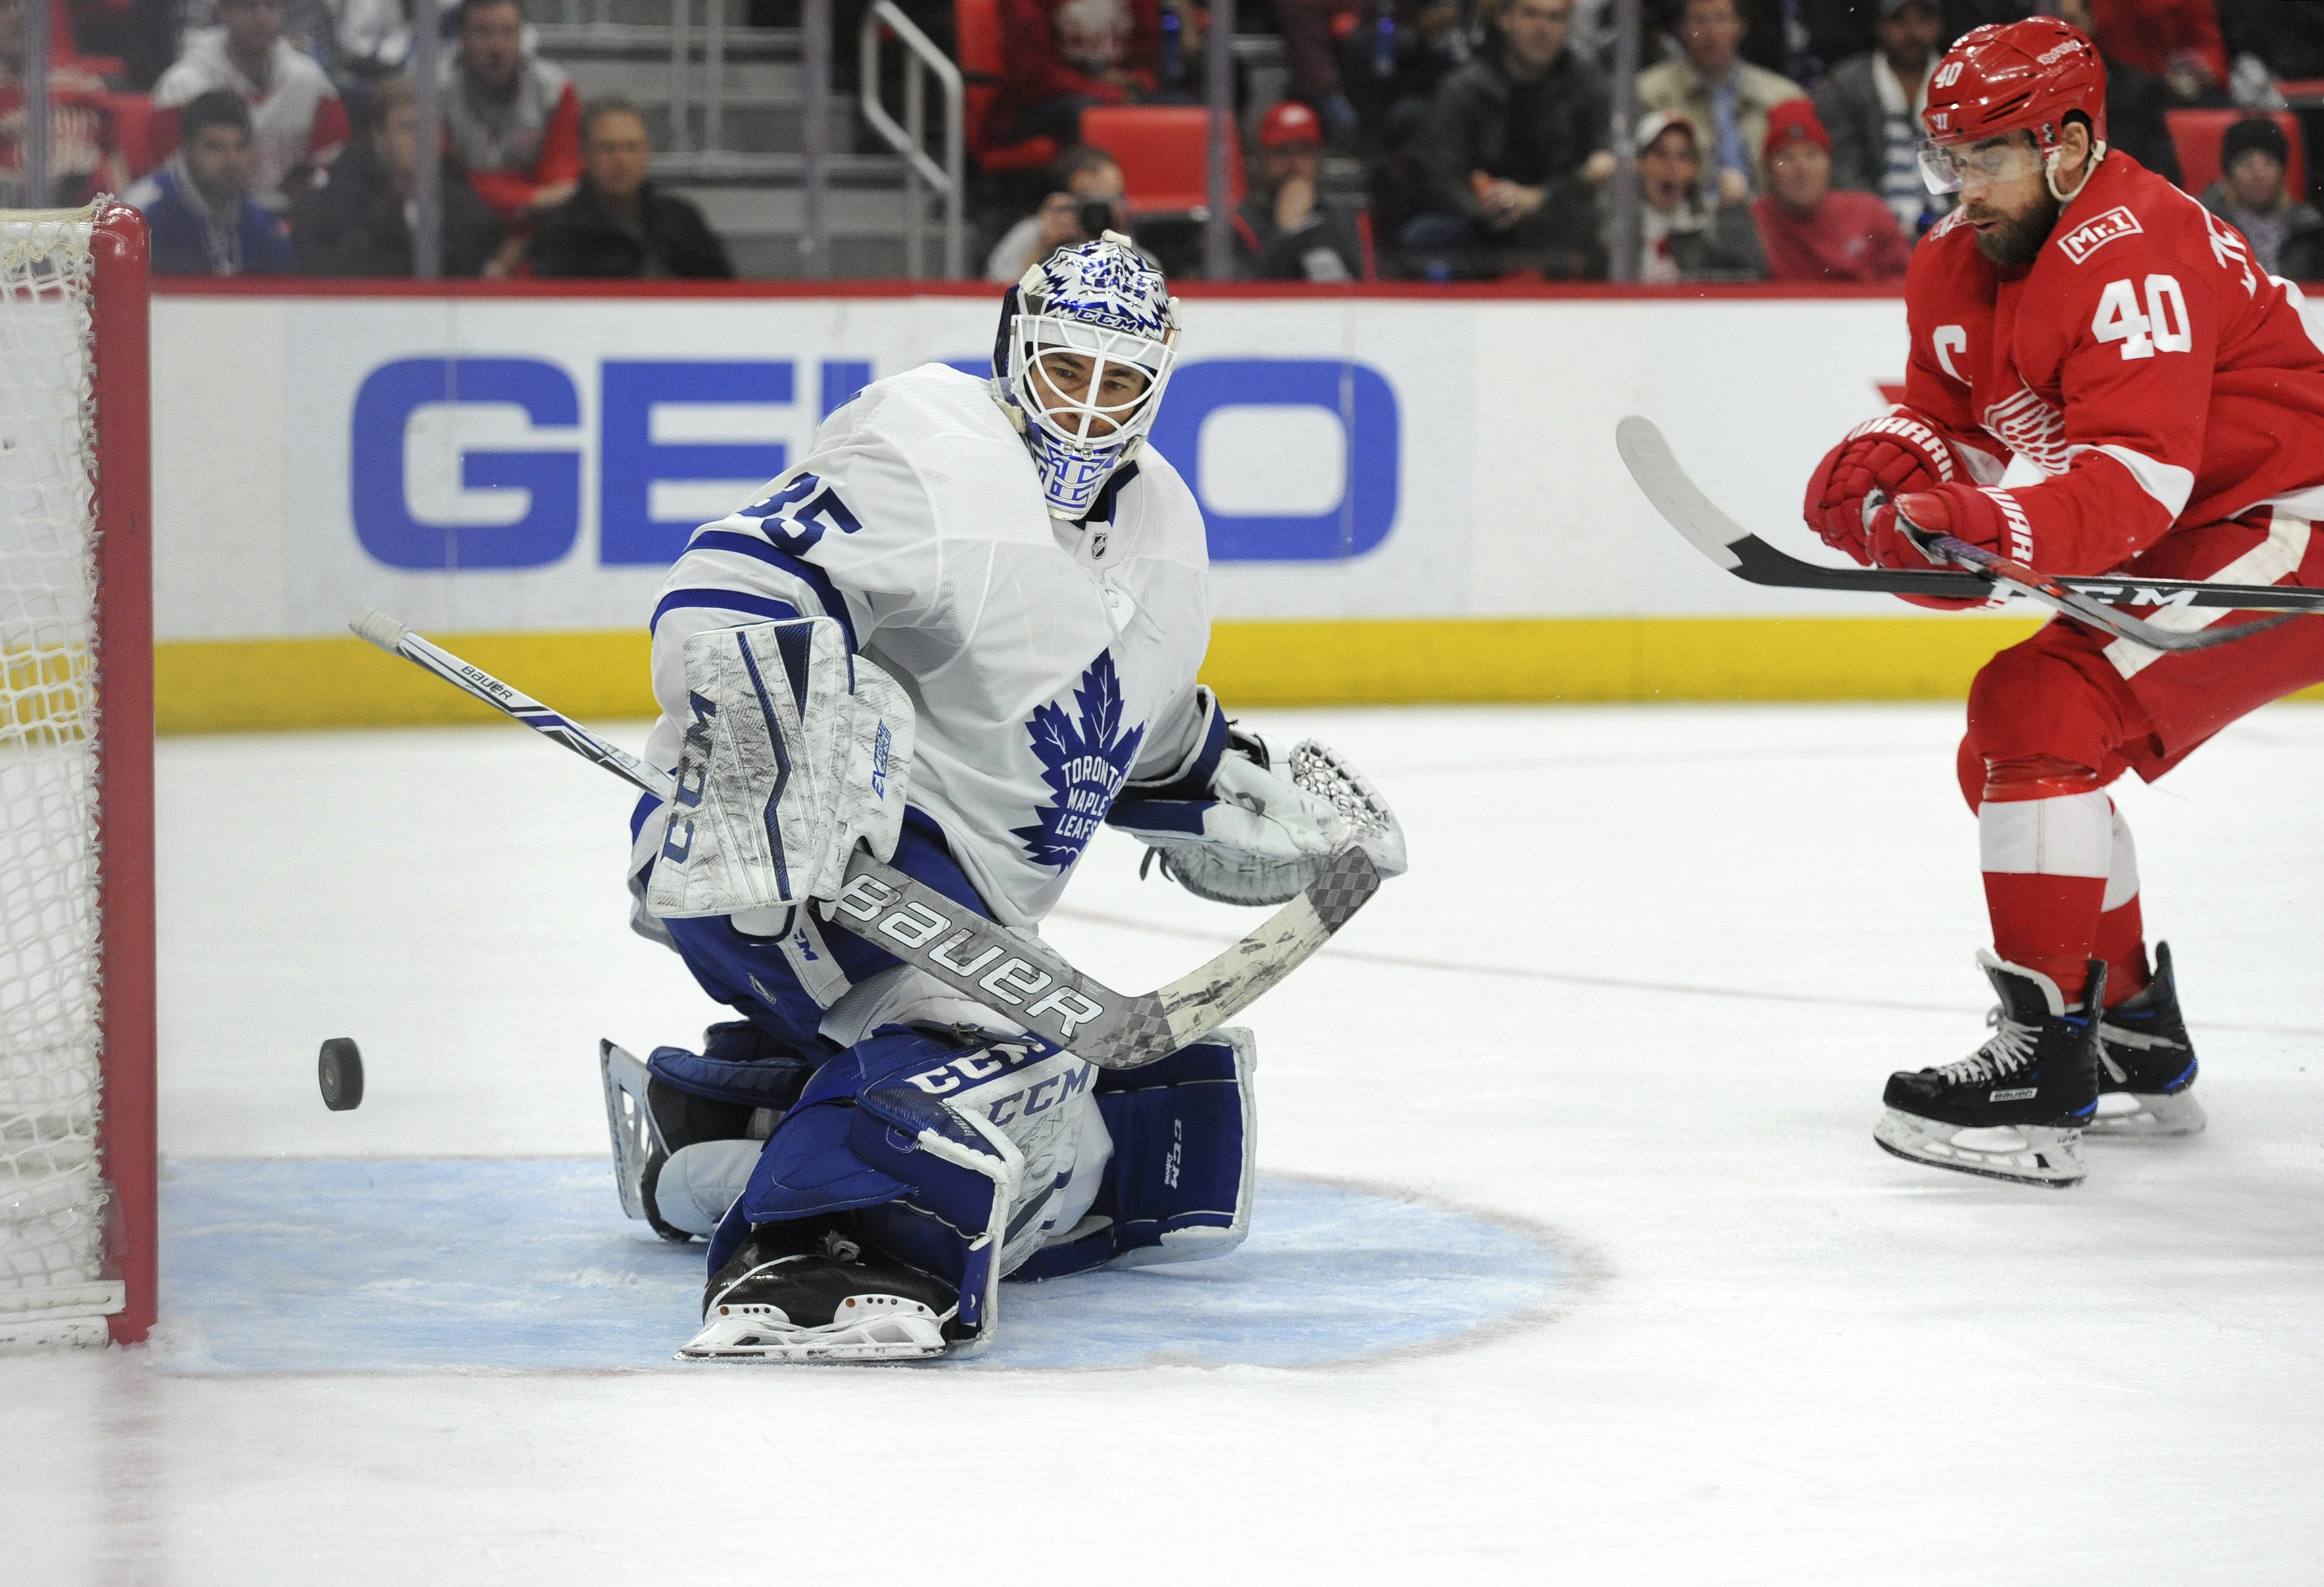 Late Goal Vaults Maple Leafs Over Red Wings The Blade